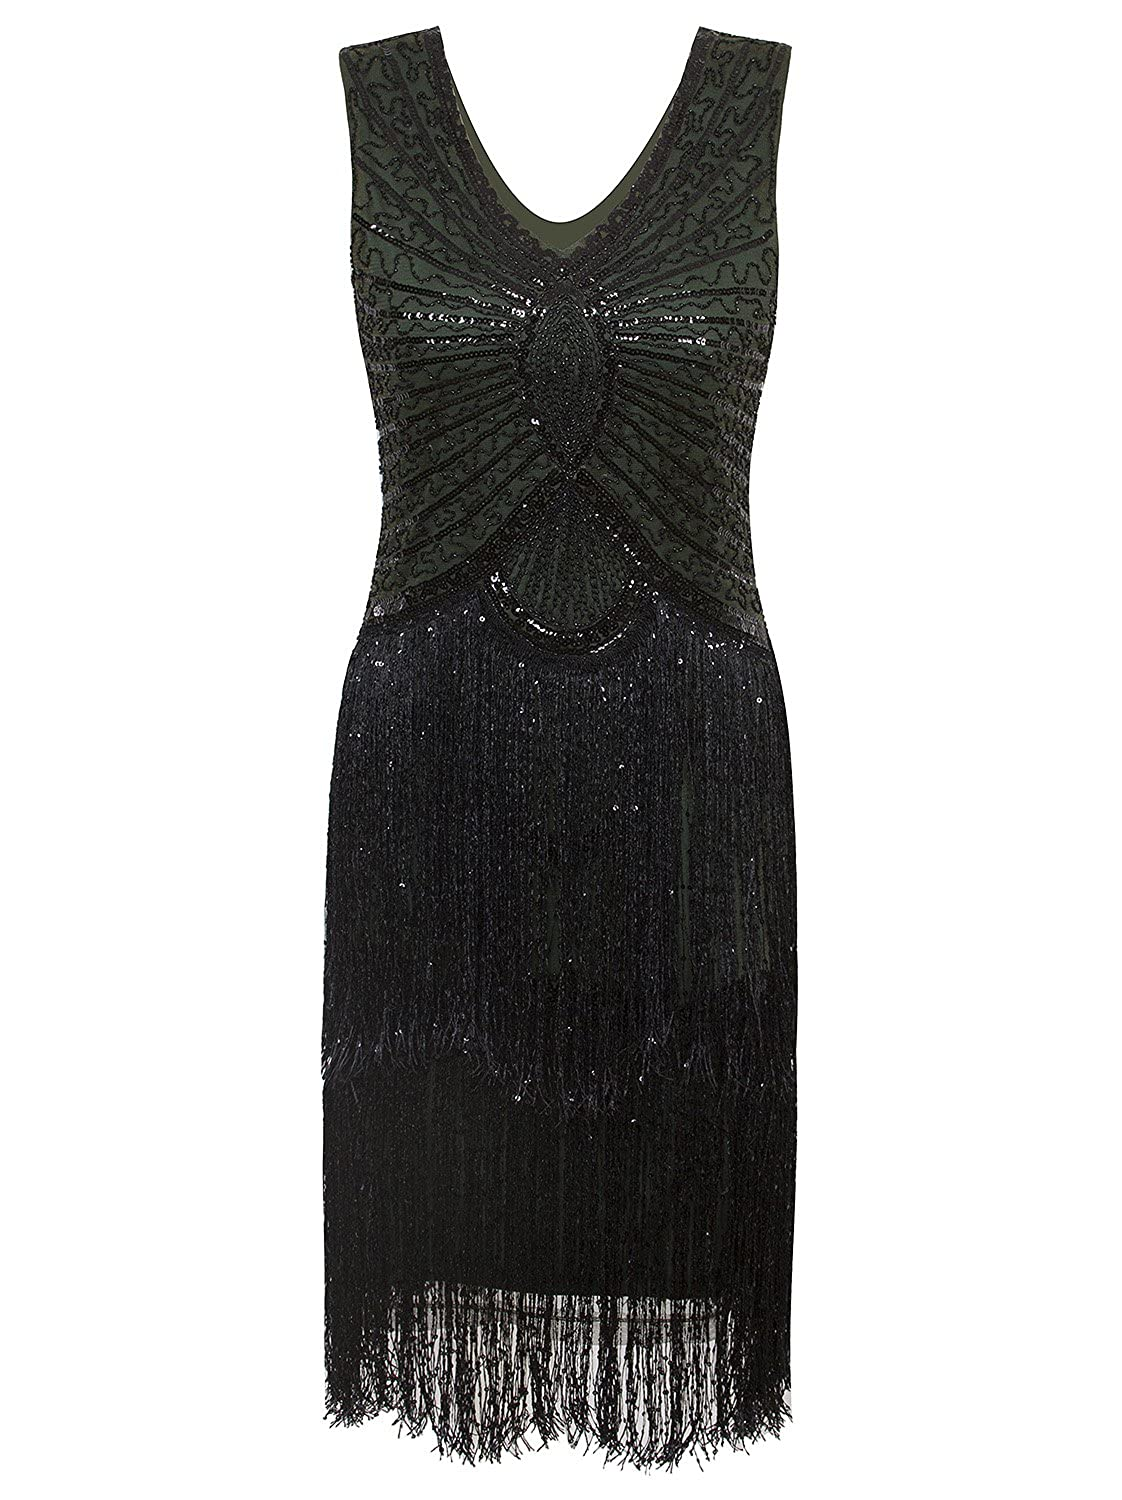 VIJIV 1920s Style Inspired Charleston Sequin Layer Tassel Cocktail Flapper Dress, Green, Small